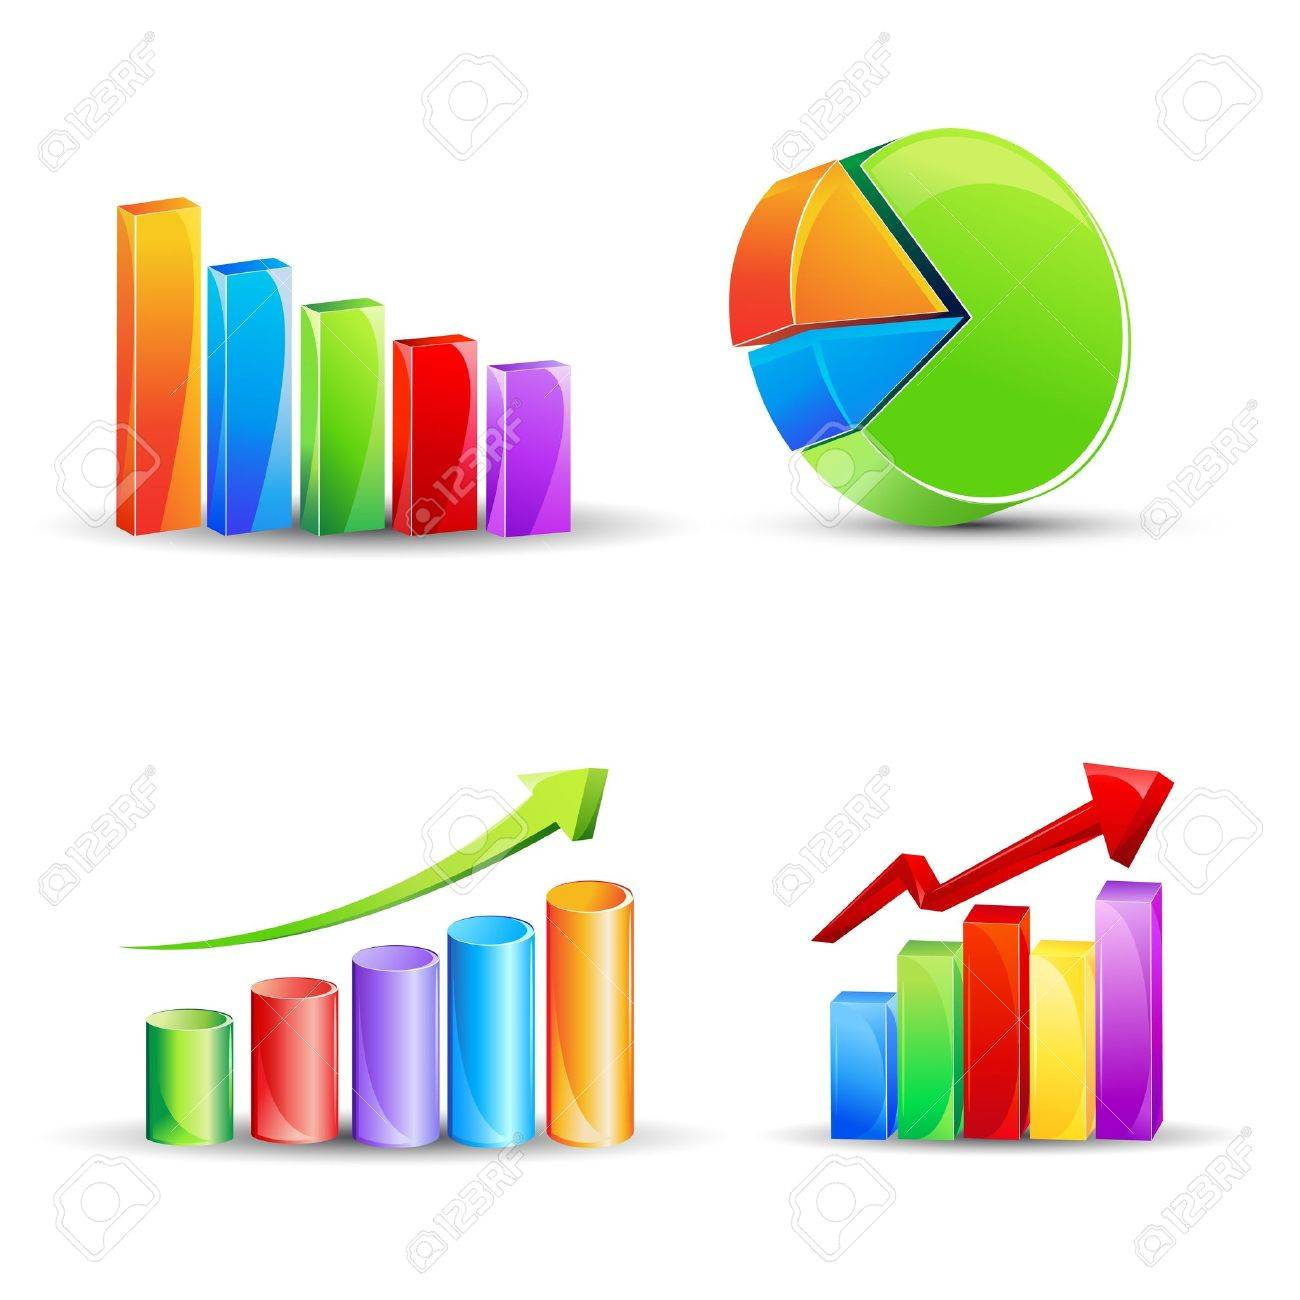 Illustration of different bar graph and pie chart royalty free illustration of different bar graph and pie chart stock vector 11275753 nvjuhfo Image collections